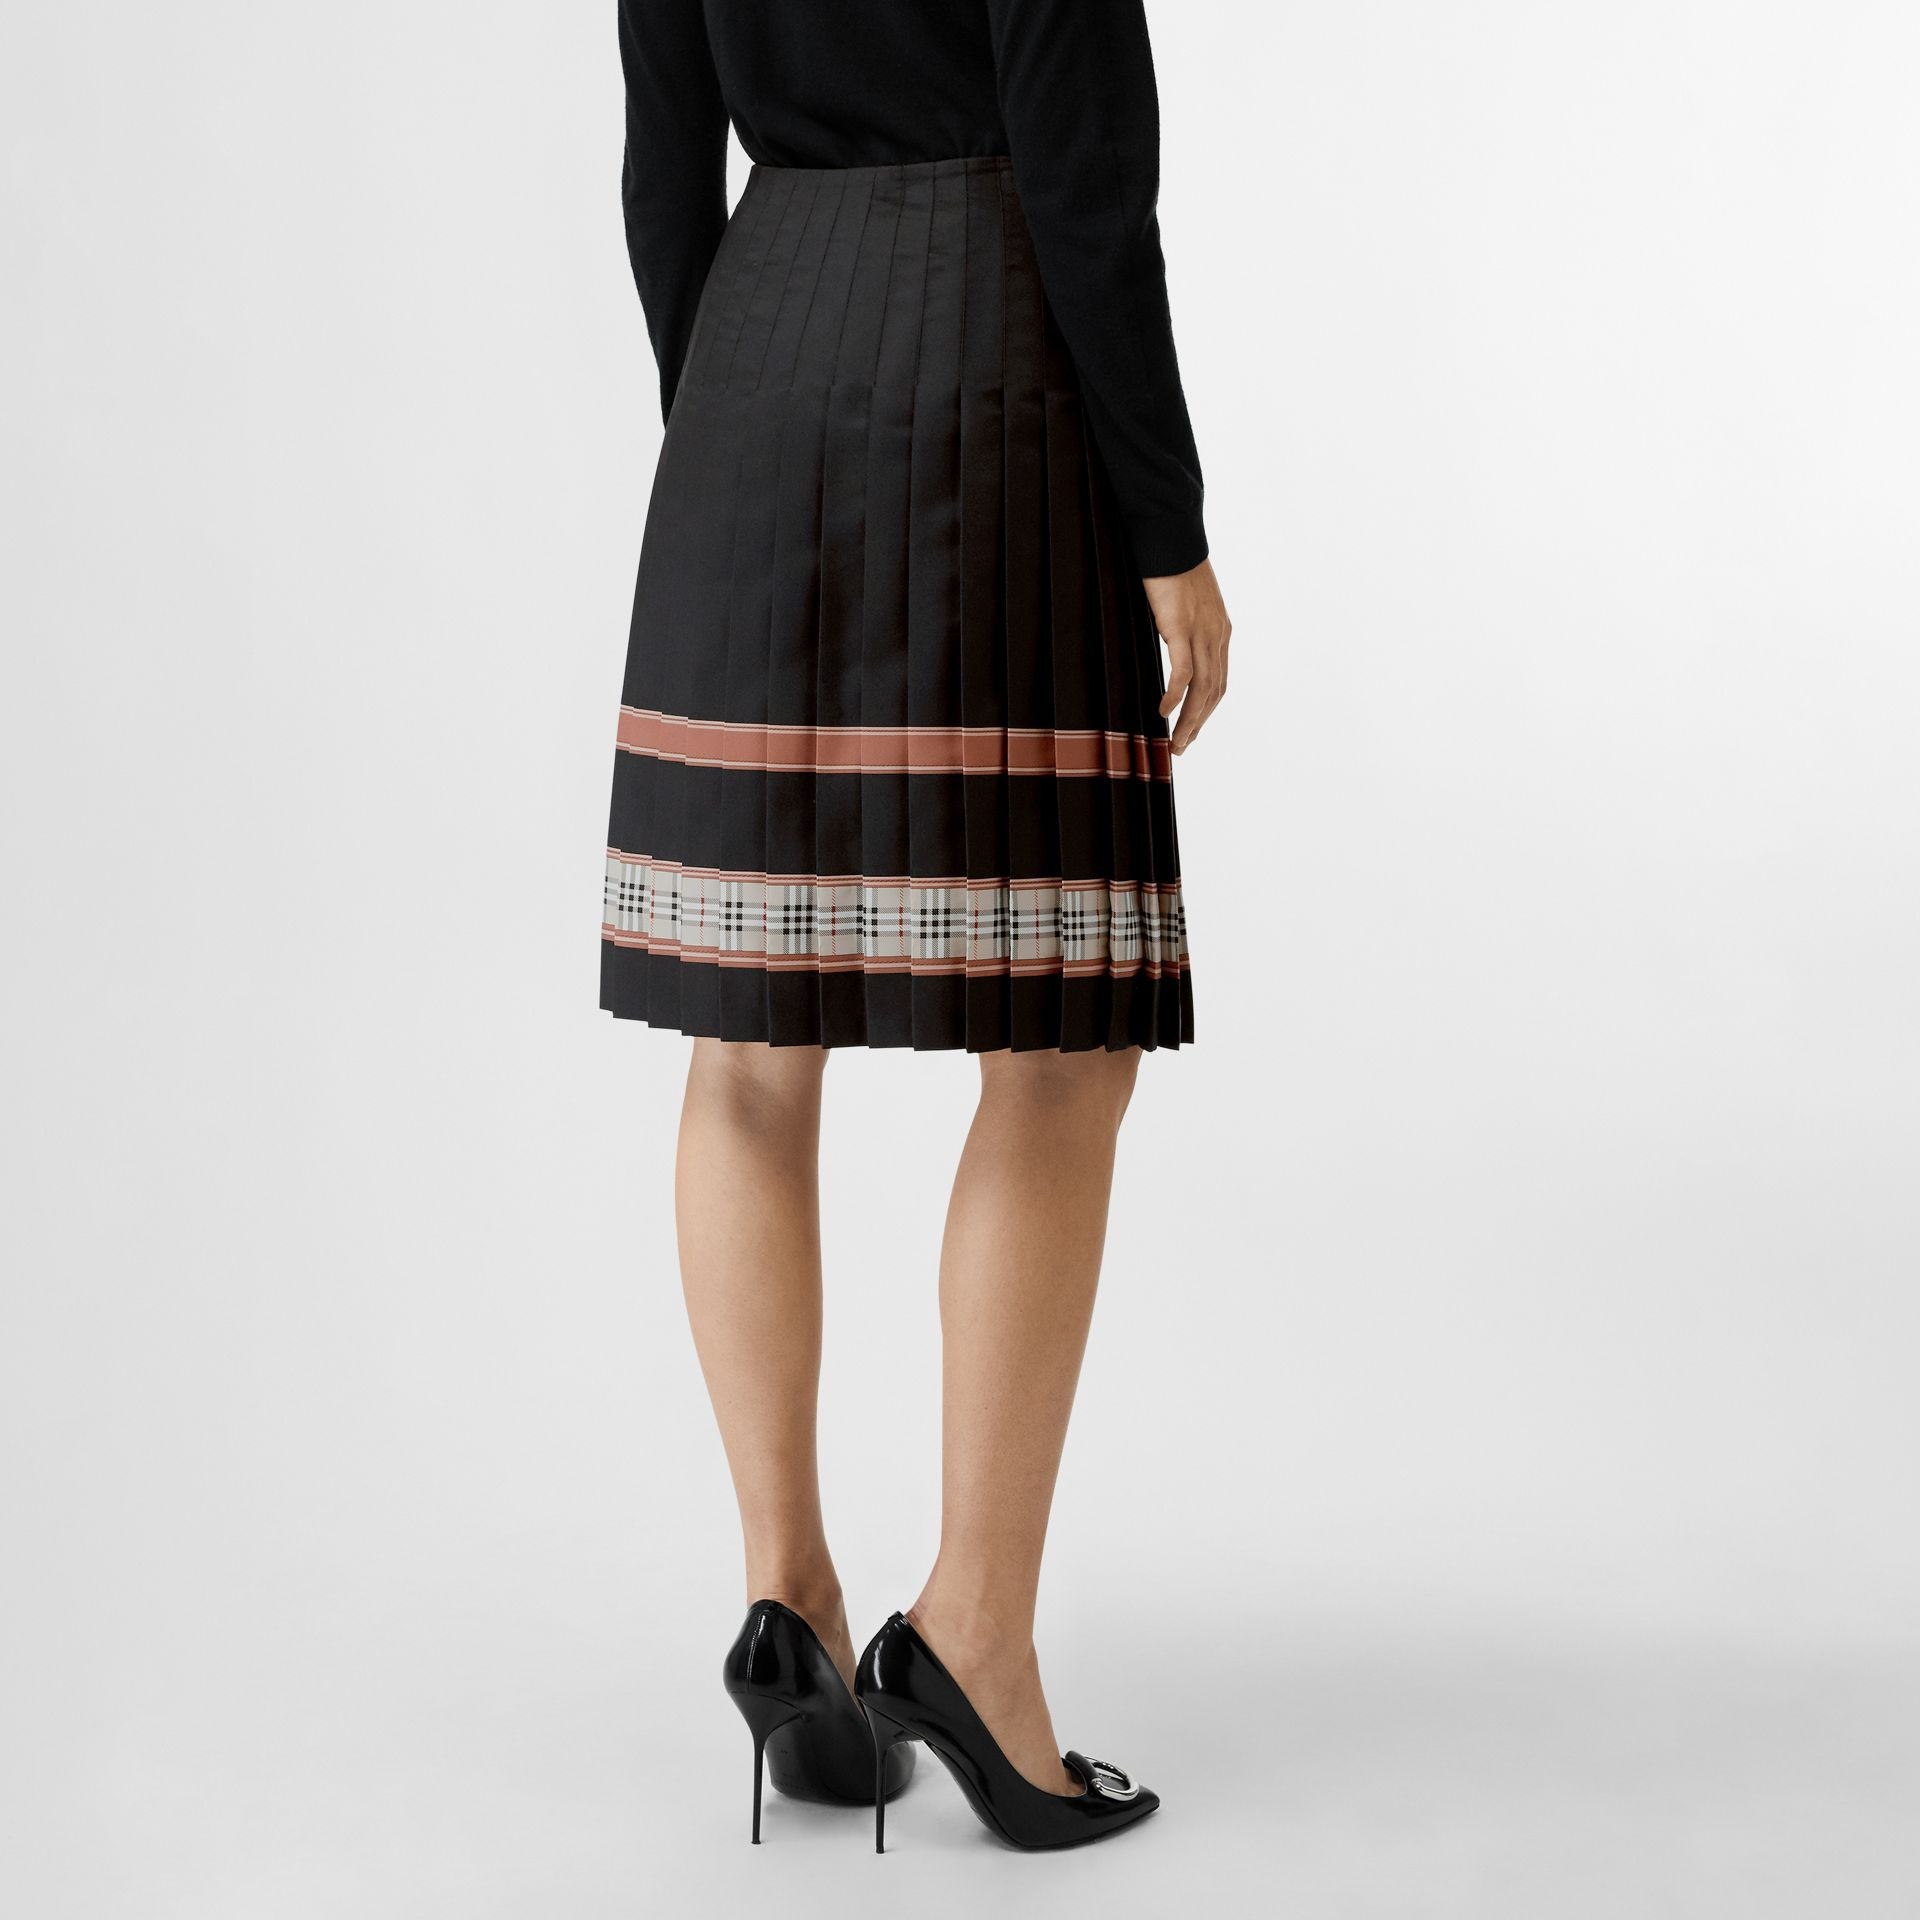 Archive Scarf Print Kilt in Multicolour - Women | Burberry United States - gallery image 2